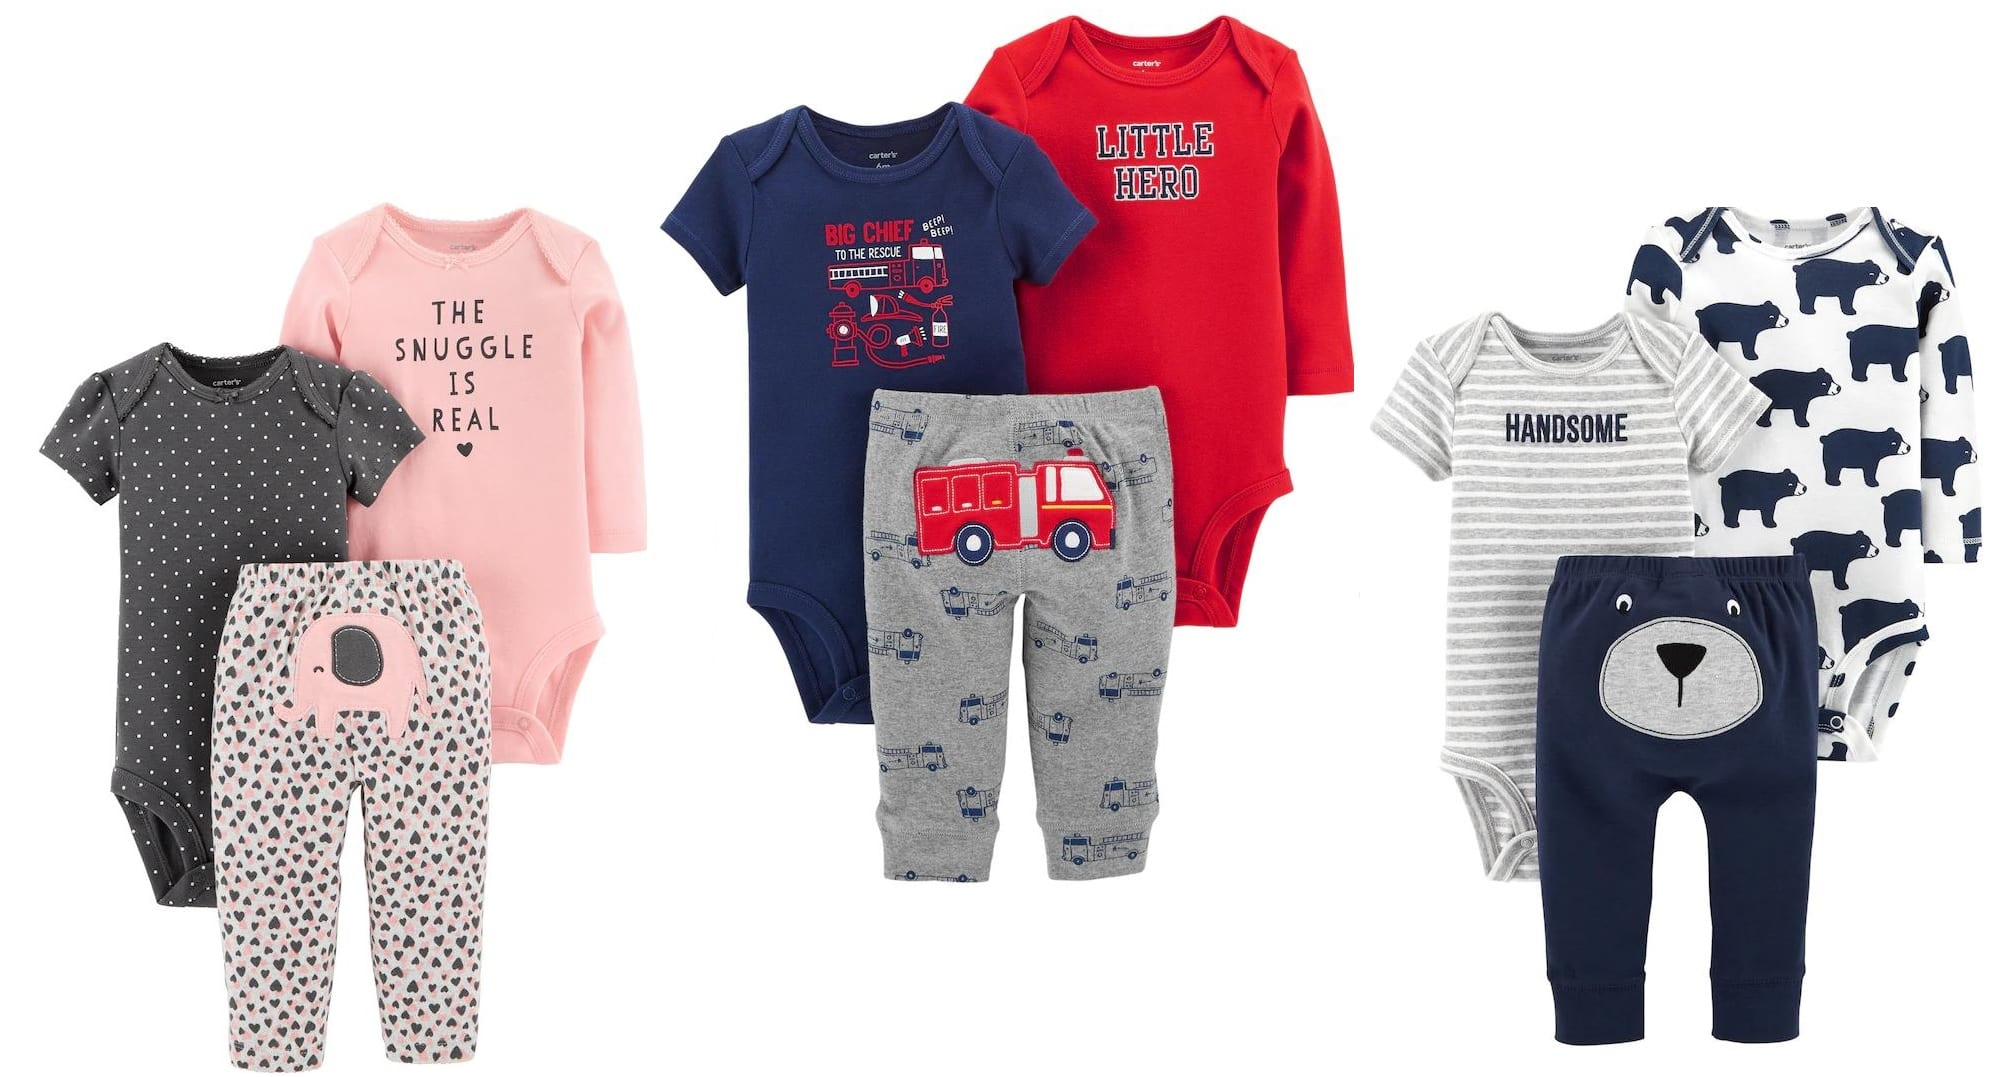 1e9f7fd9fc977 Kohl's Cardholders: Baby Carter's 3-Piece Outfits - Slickdeals.net